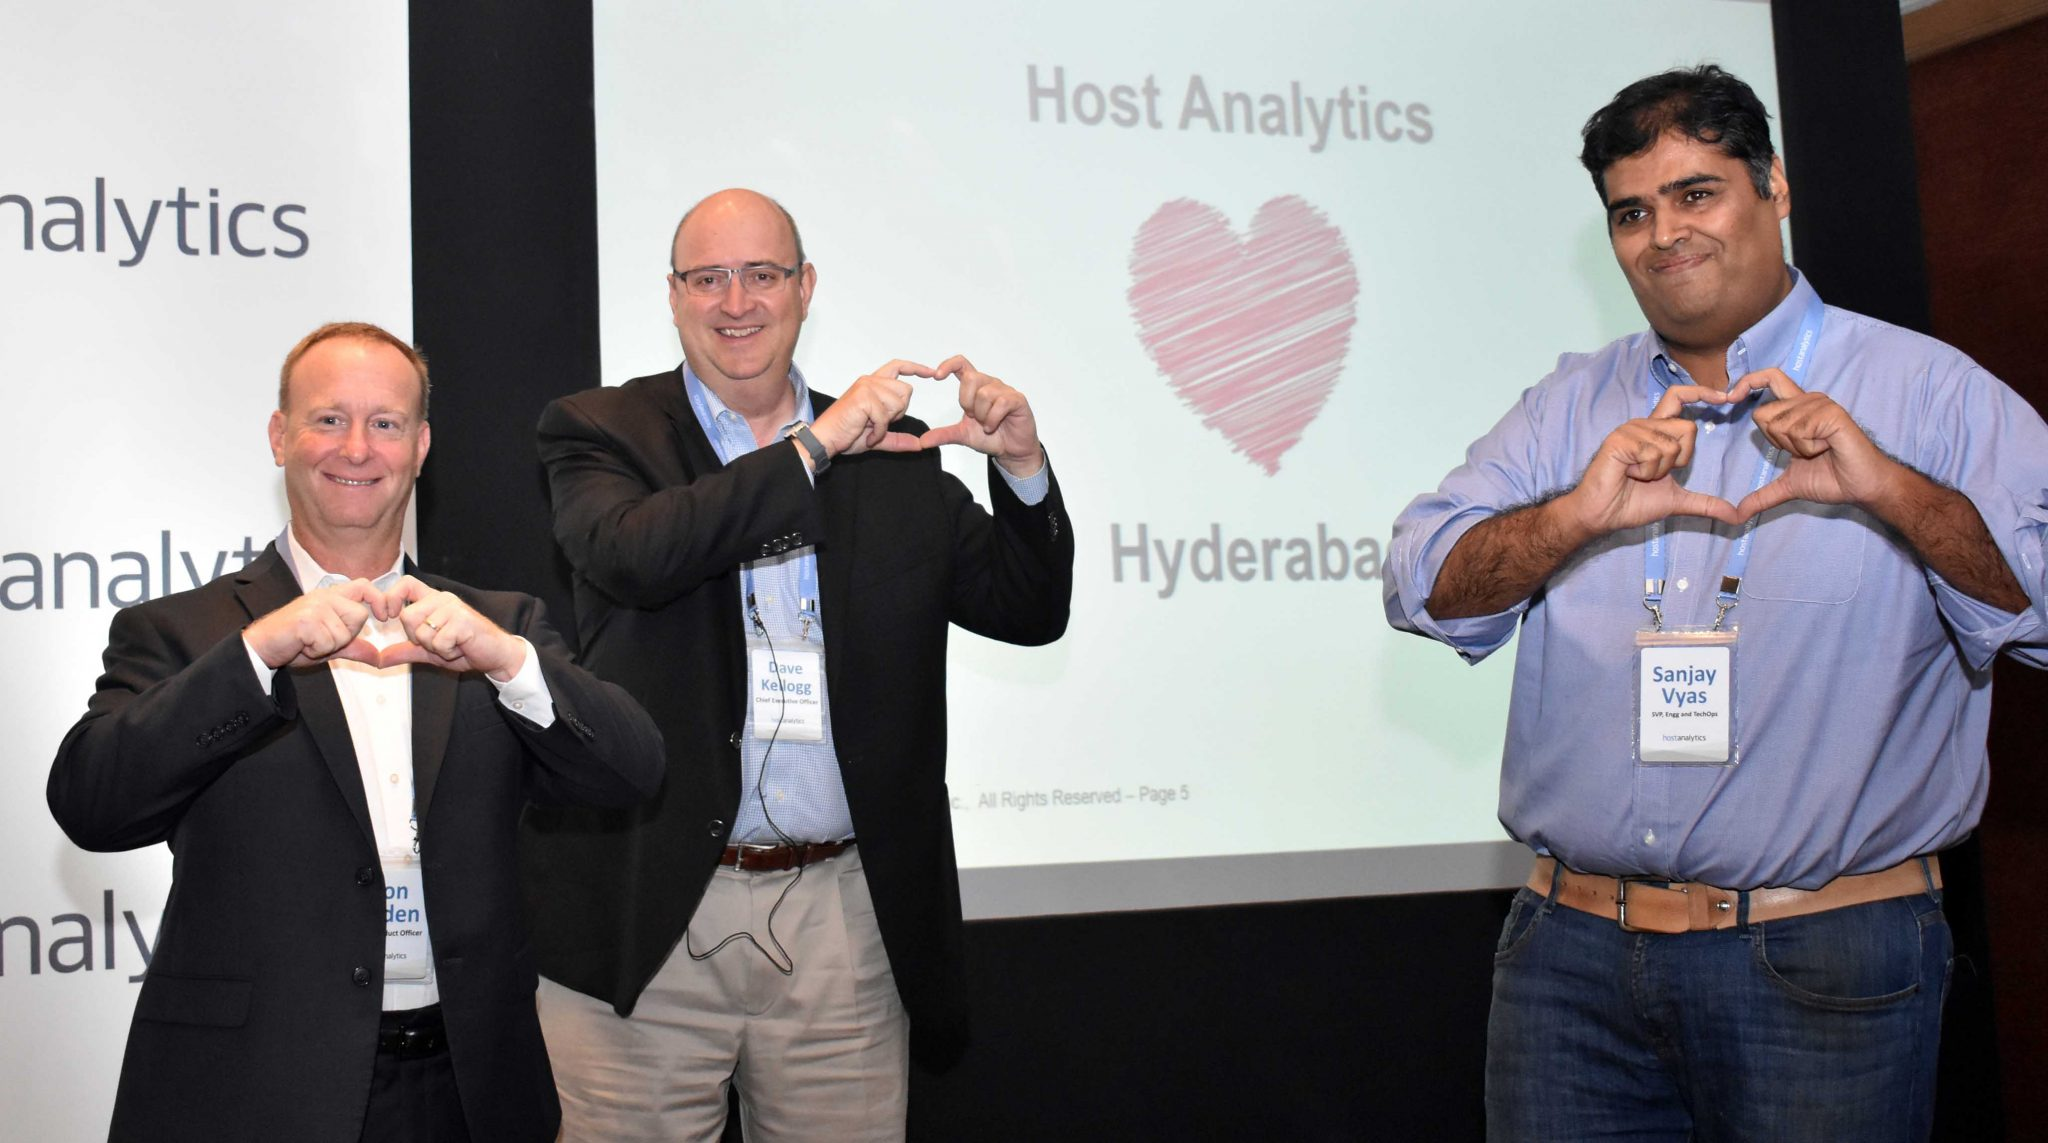 Ron Baden, Dave Kellogg, Sanjay Vyas of Host Analytics--pic 8